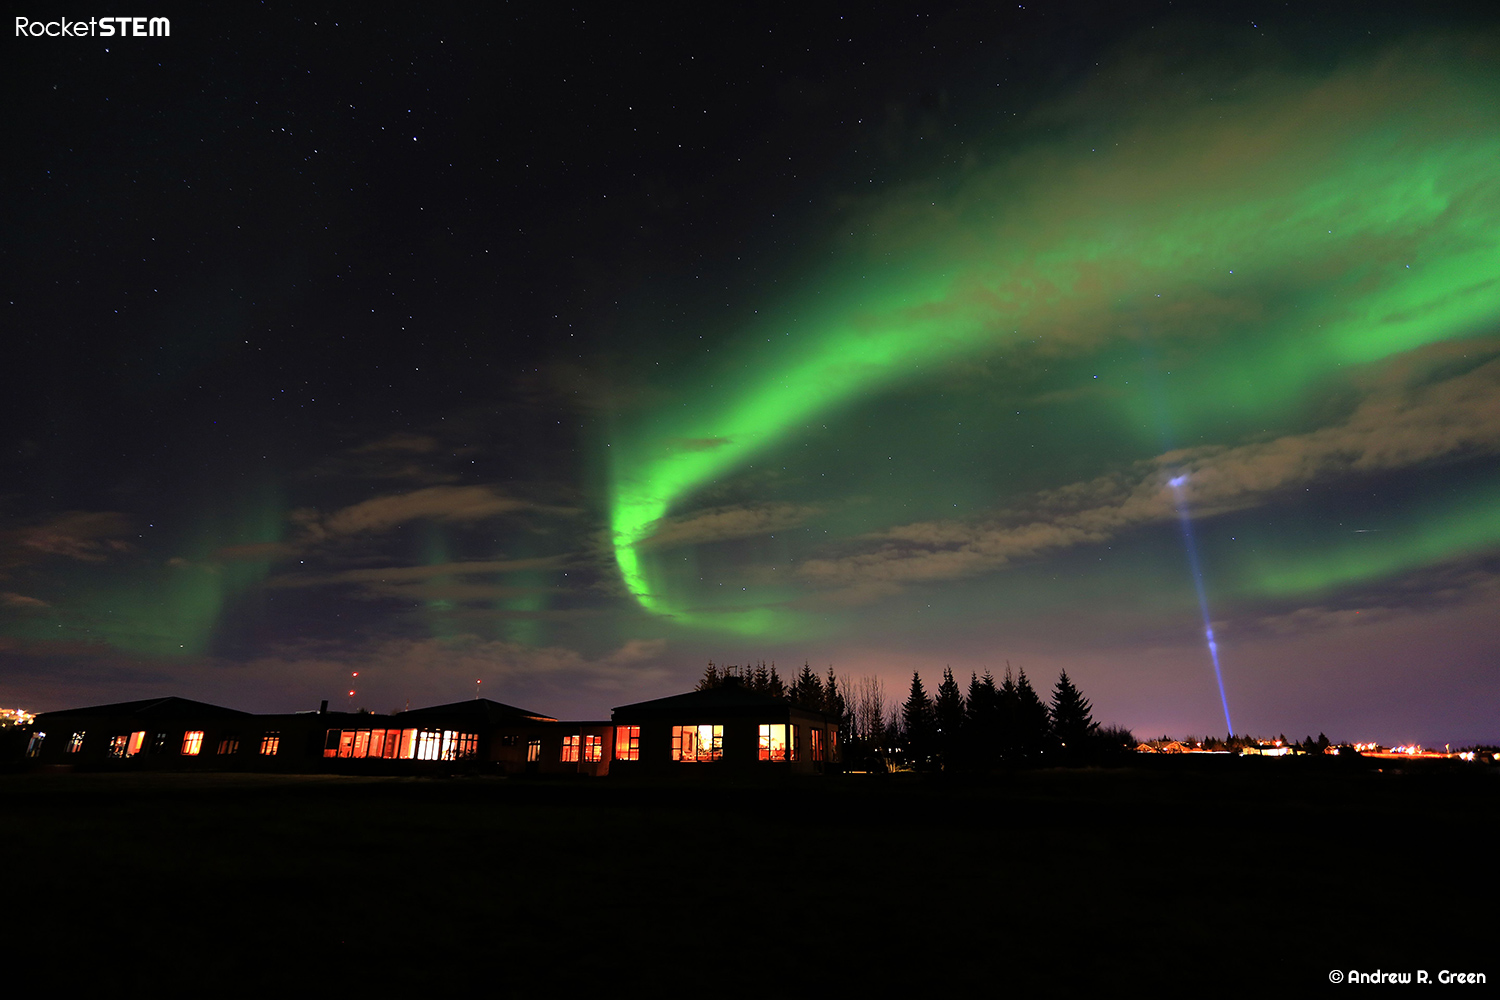 Aurora Borealis as seen in the skies above a hotel near Reykjavik, Iceland. Photo: Andrew Green